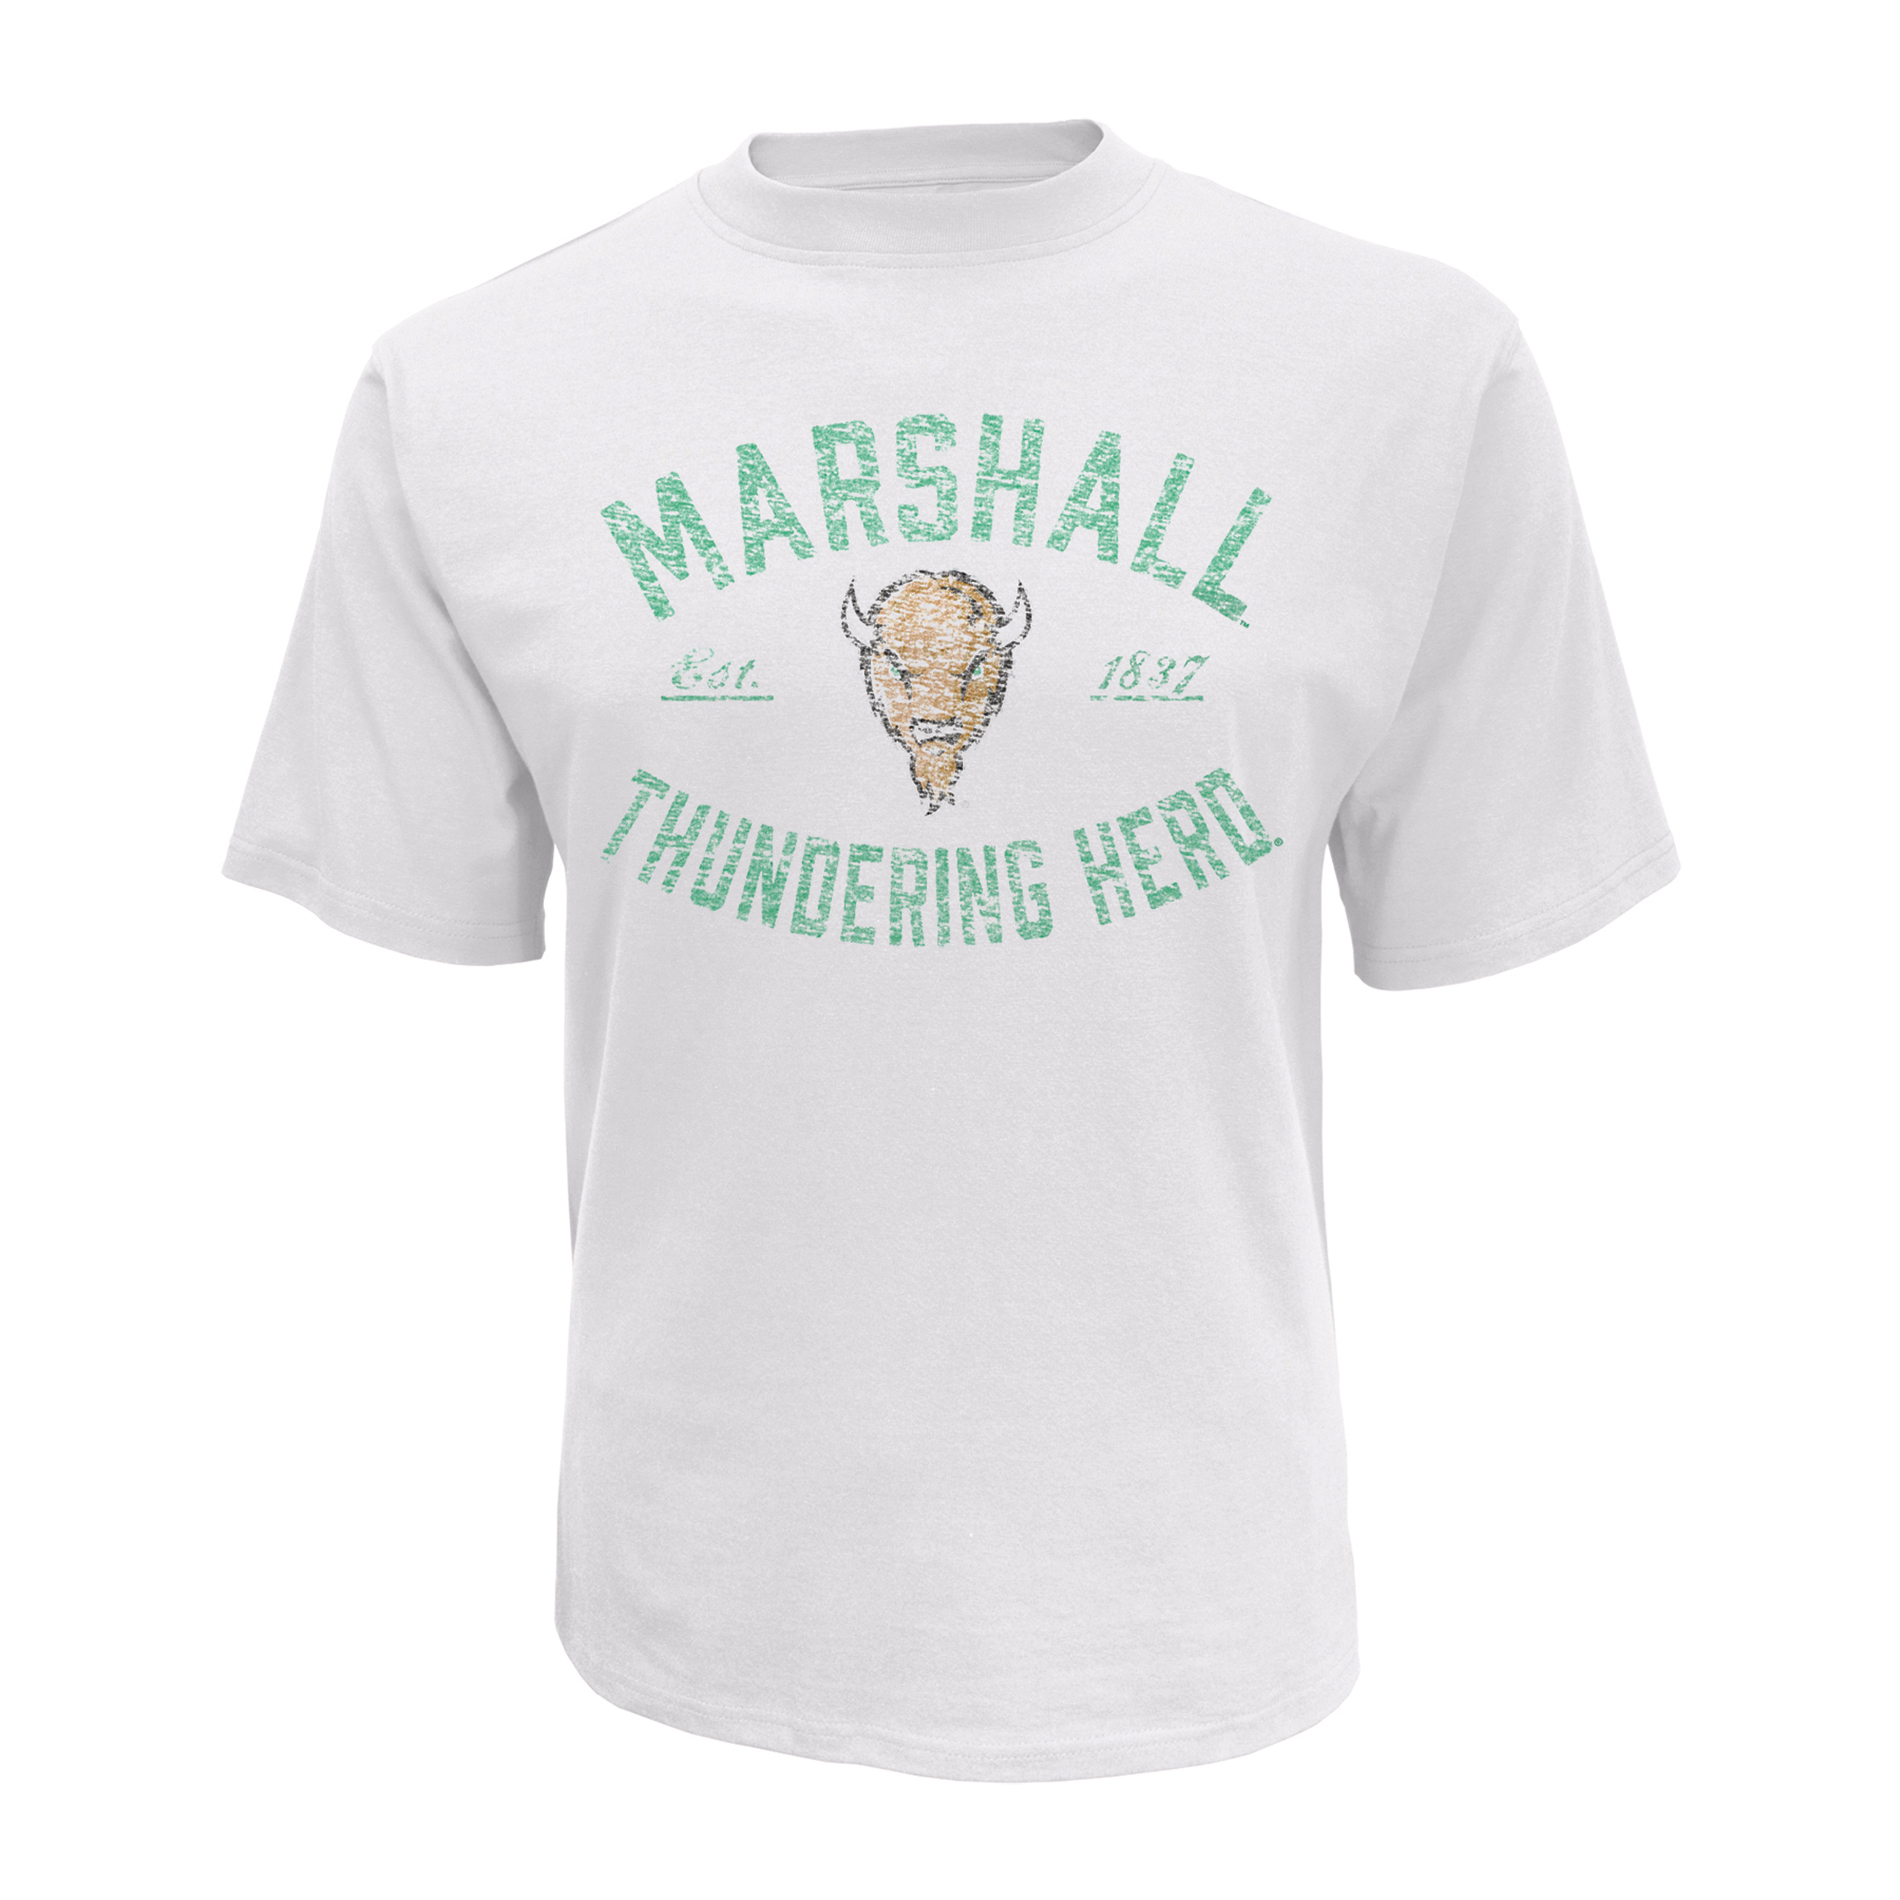 petite NCAA Men's Short-Sleeve T-Shirt - Marshall Thundering Herd, Size: XL